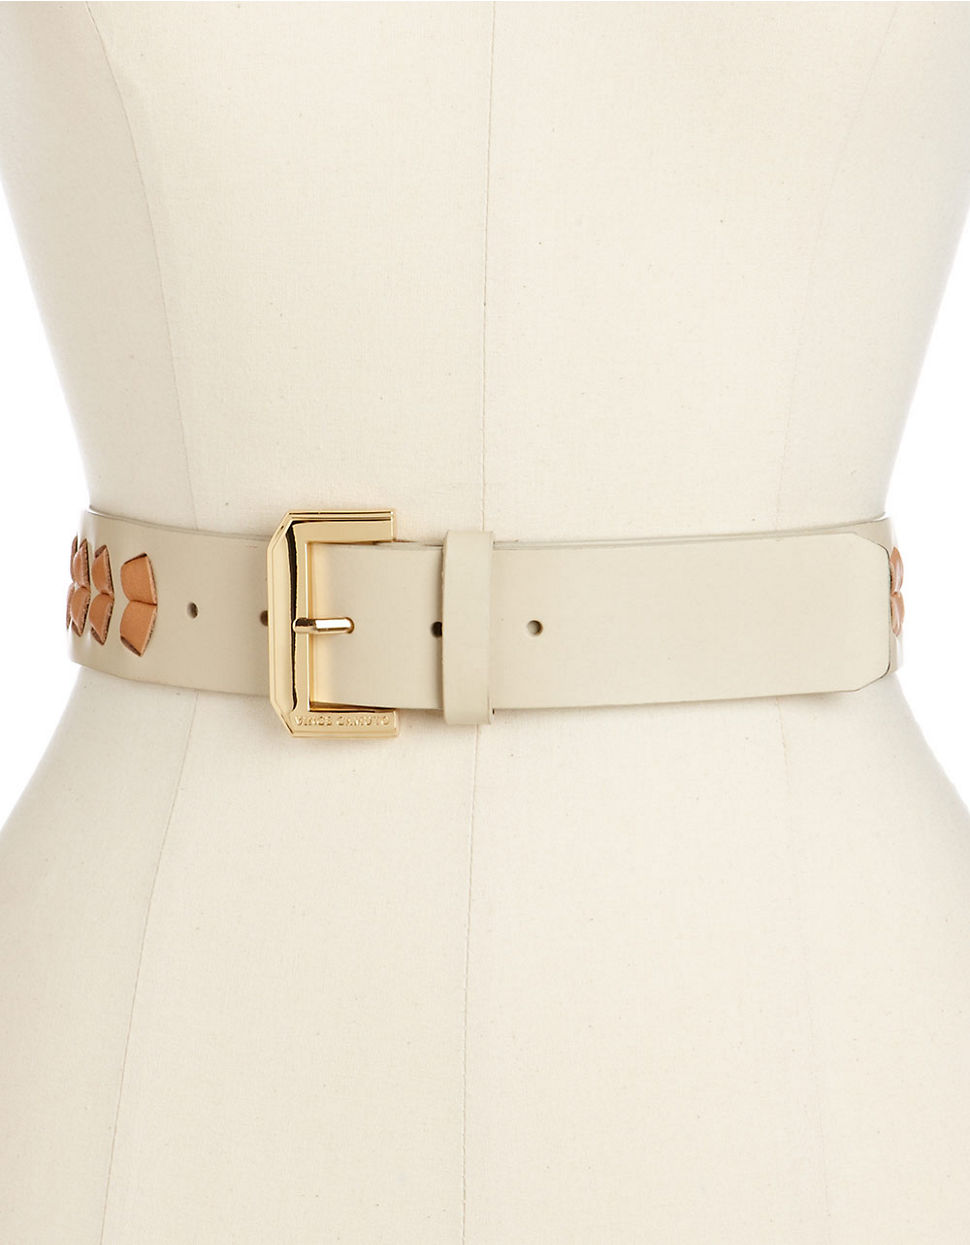 Vince camuto Weekend Casual Belt with Polished Gold Logo Buckle natural Large